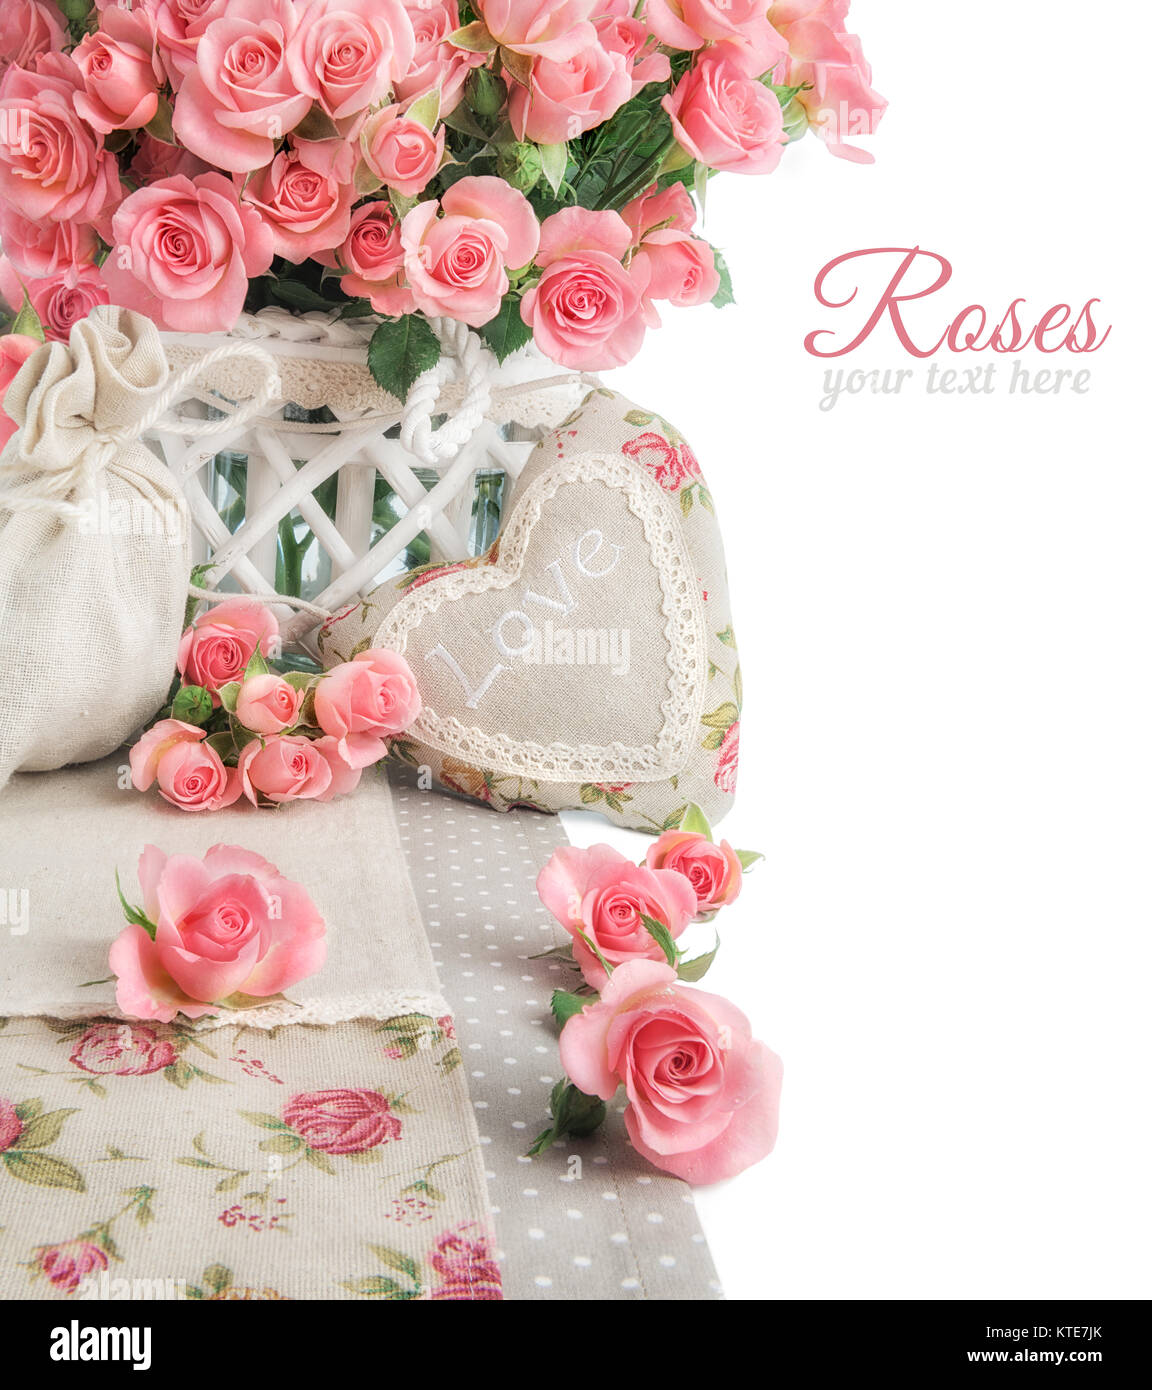 Border Image With Many Pink Roses And Stuffed Heart On White Stock